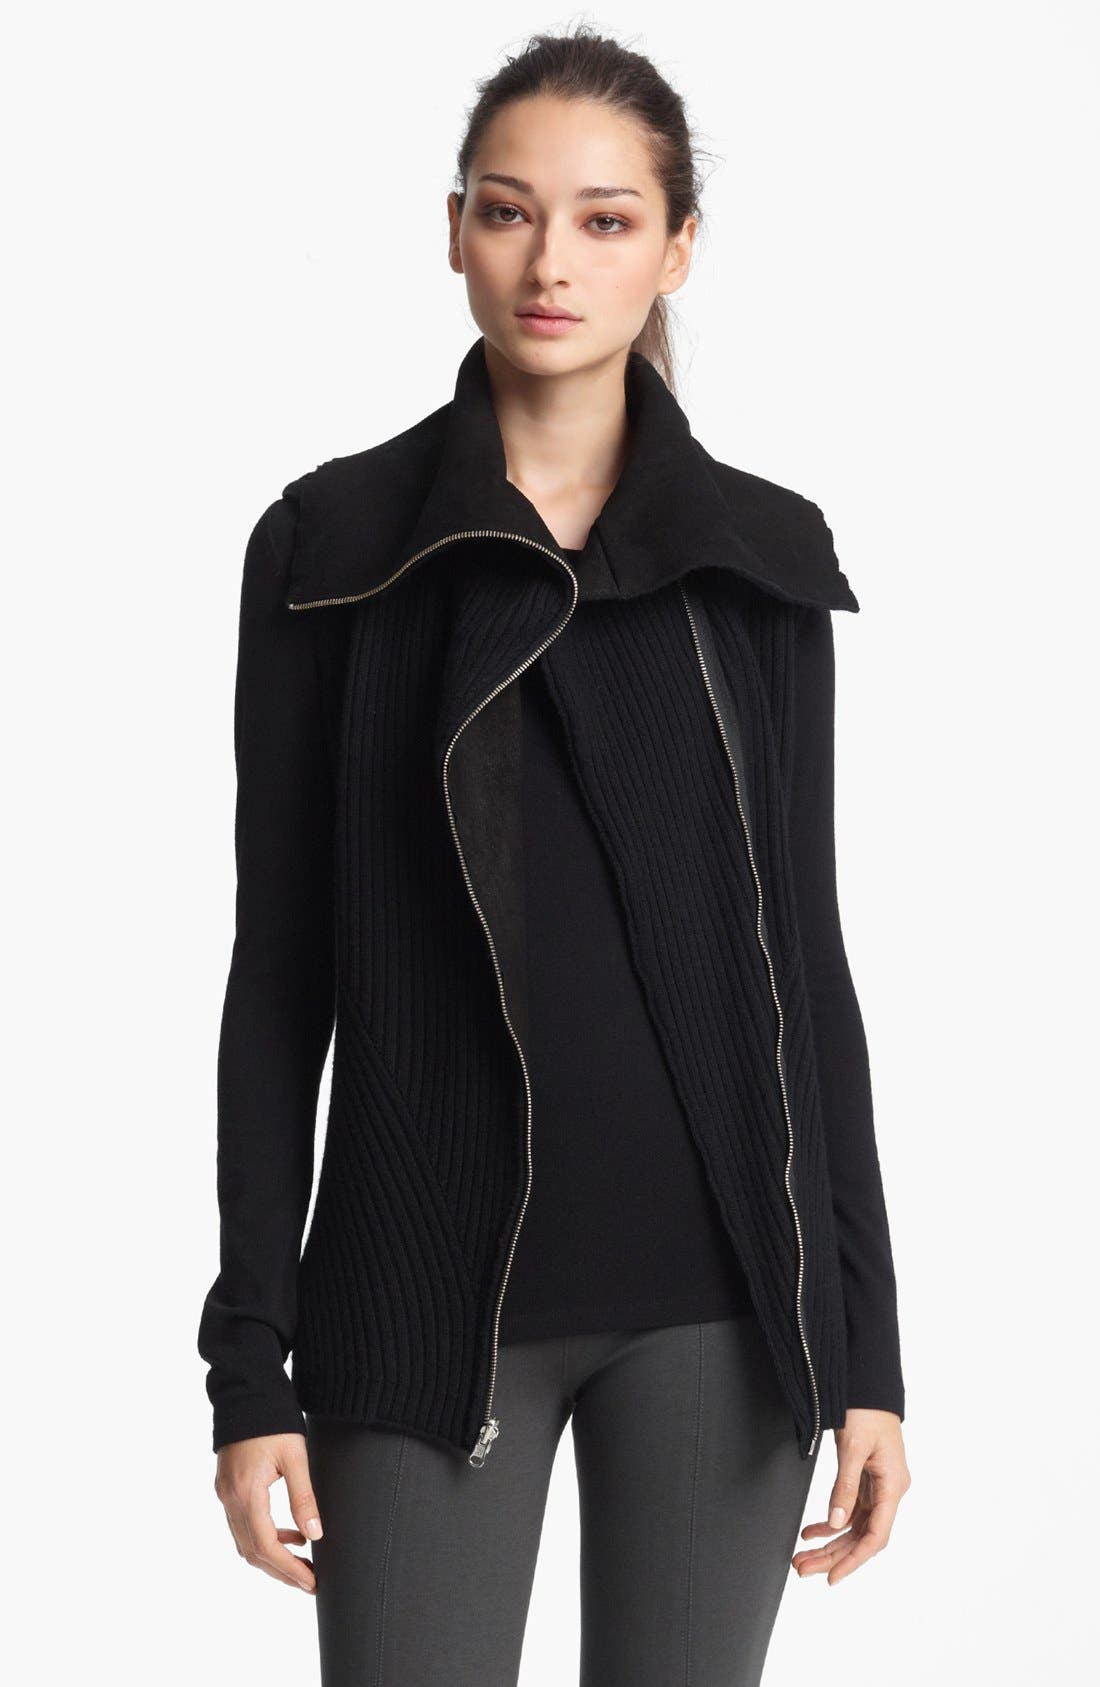 Alternate Image 1 Selected - Donna Karan Collection Wool & Cashmere Sleeveless Knit Jacket